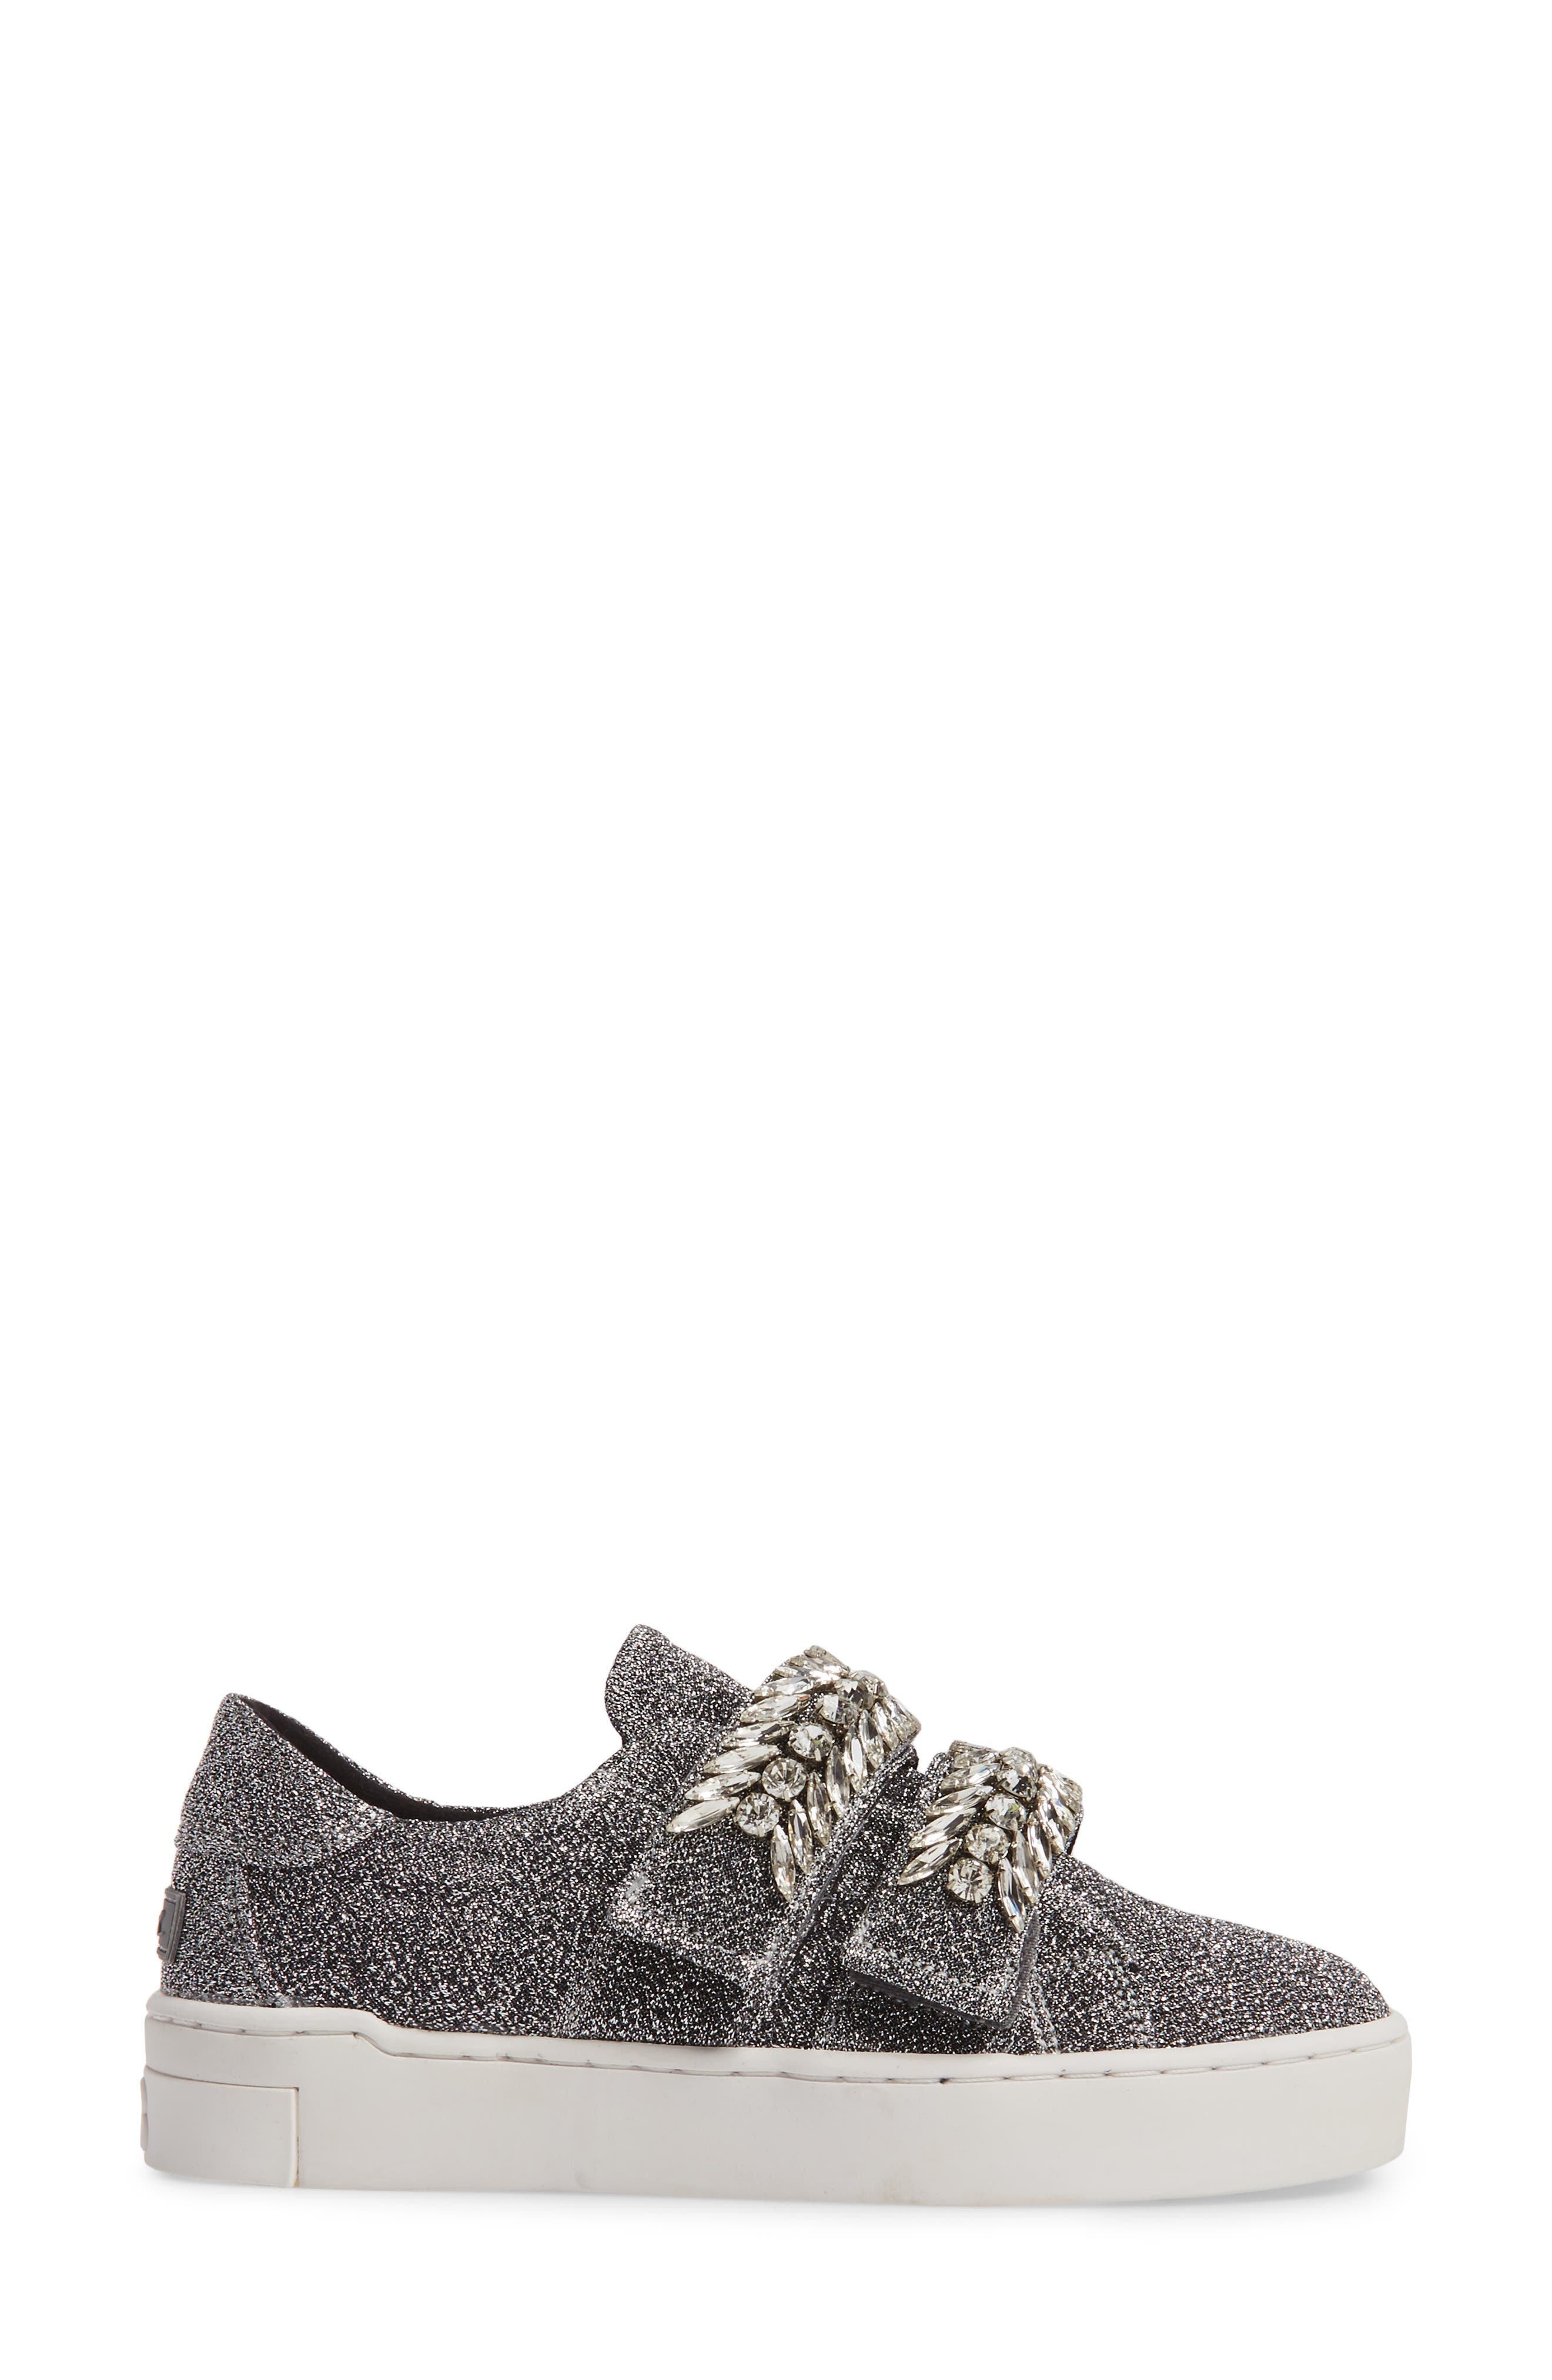 SUECOMMA BONNIE,                             Crystal Embellished Sneaker,                             Alternate thumbnail 3, color,                             040